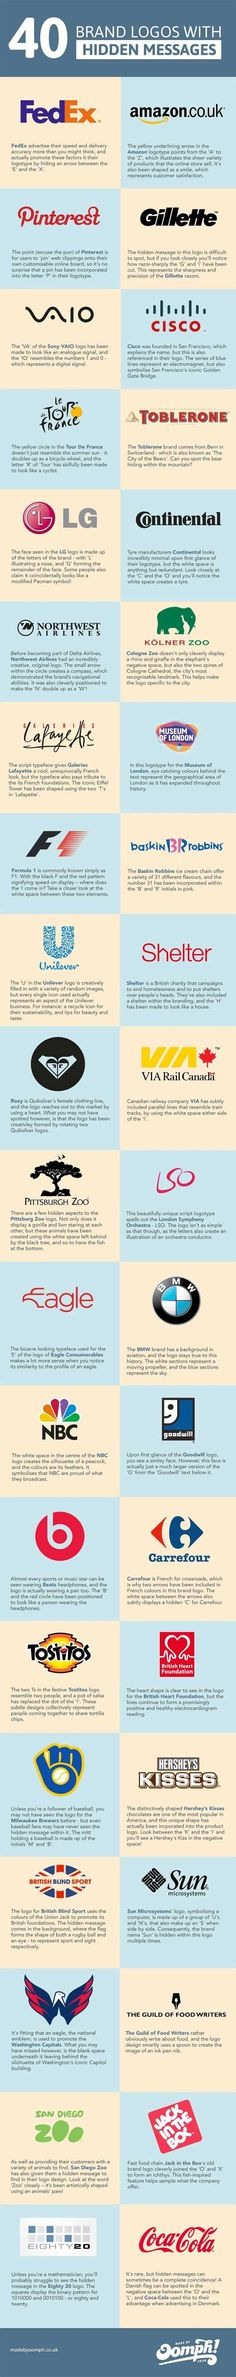 Oomph, a company that makes plastic cards, compiled a list of 40 popular logos that feature hidden messages about the brand they represent. I learned a lot